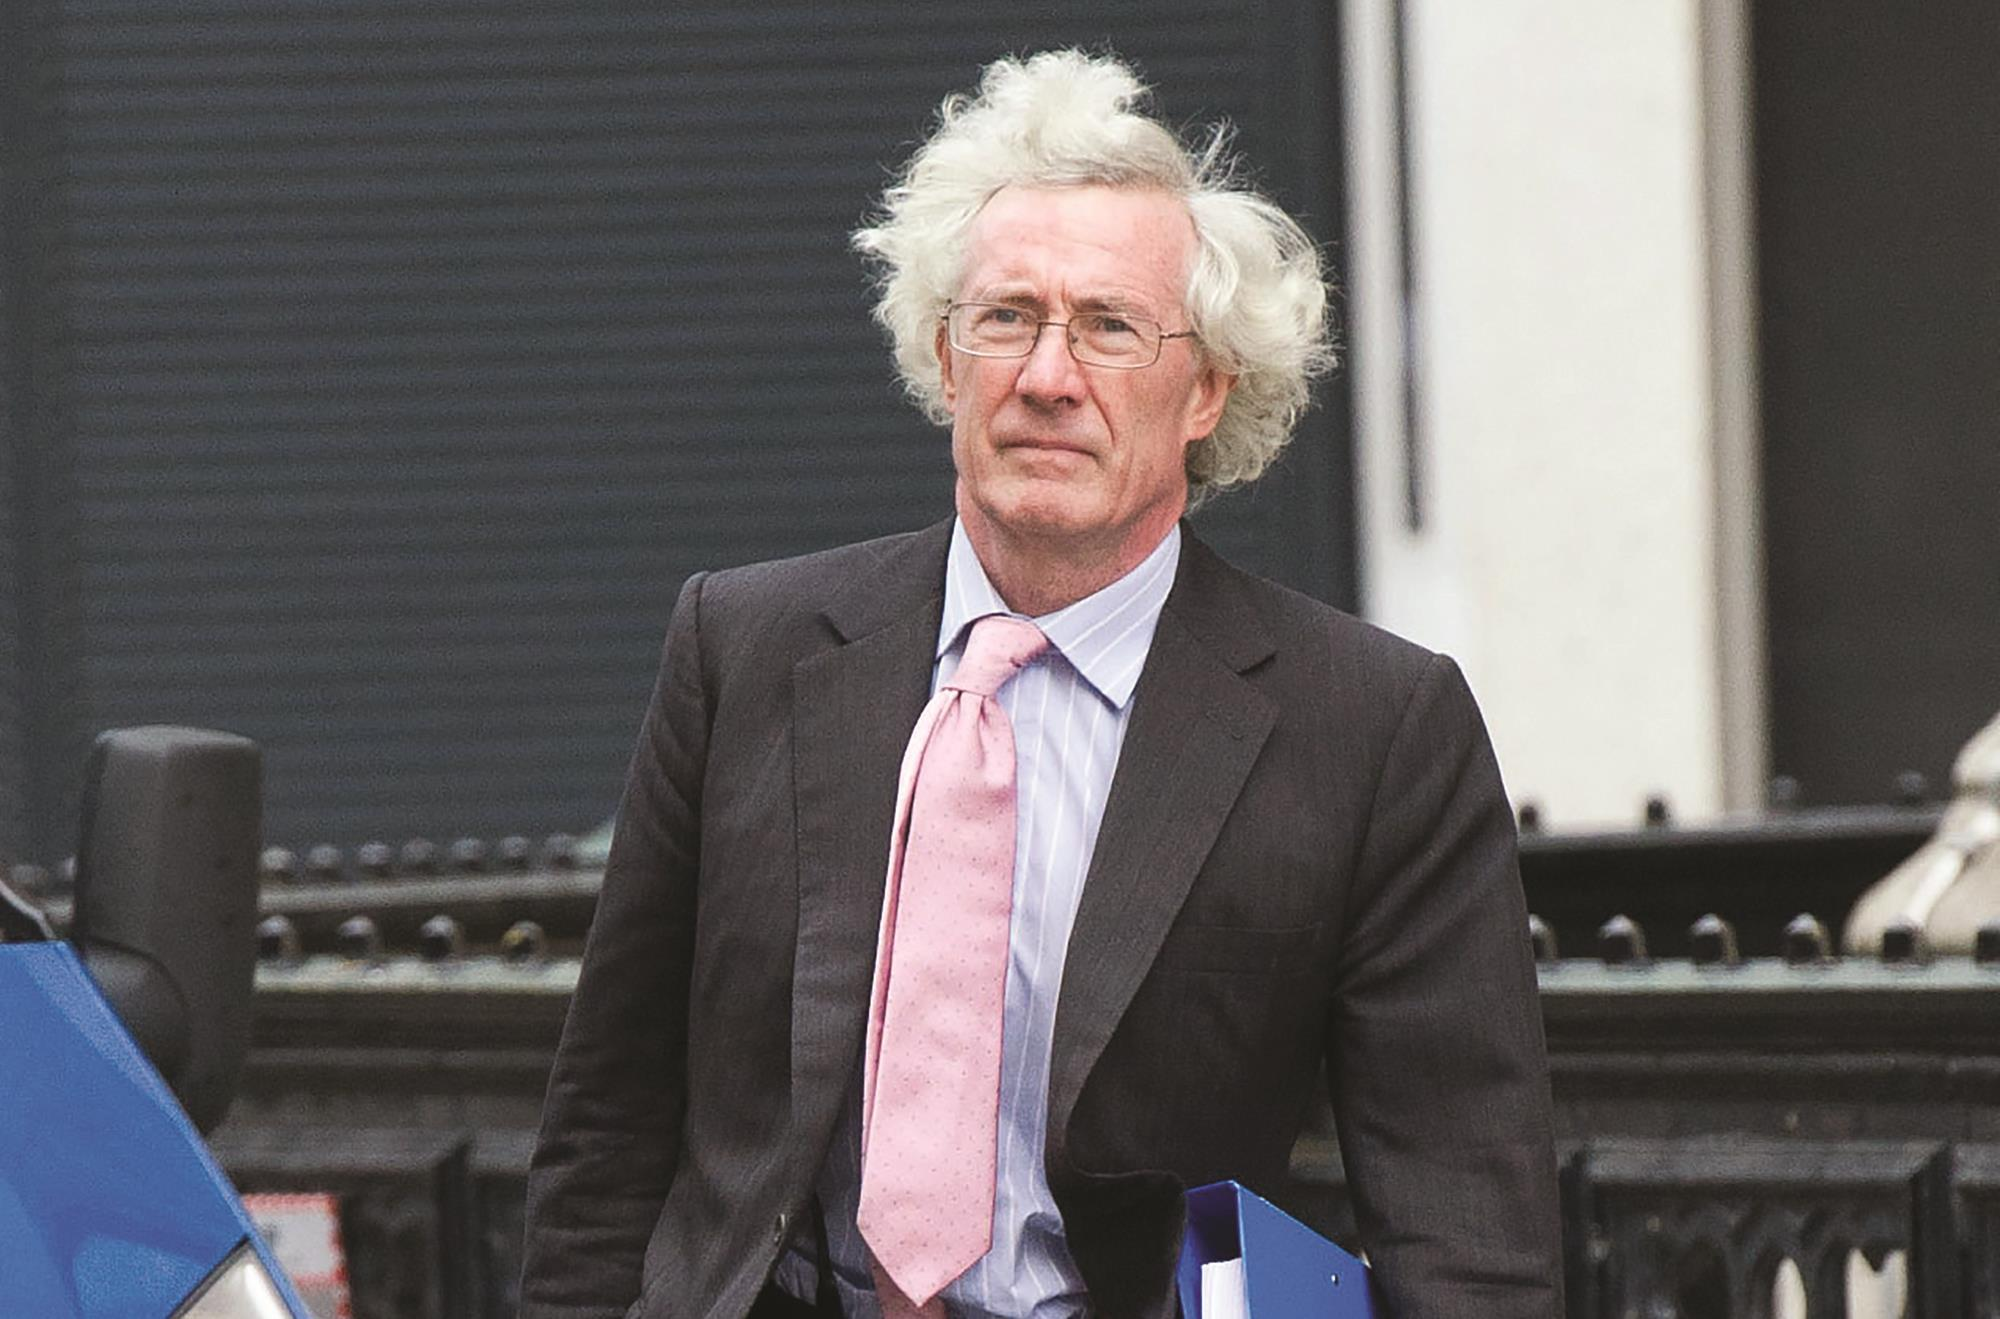 lord sumption - photo #24